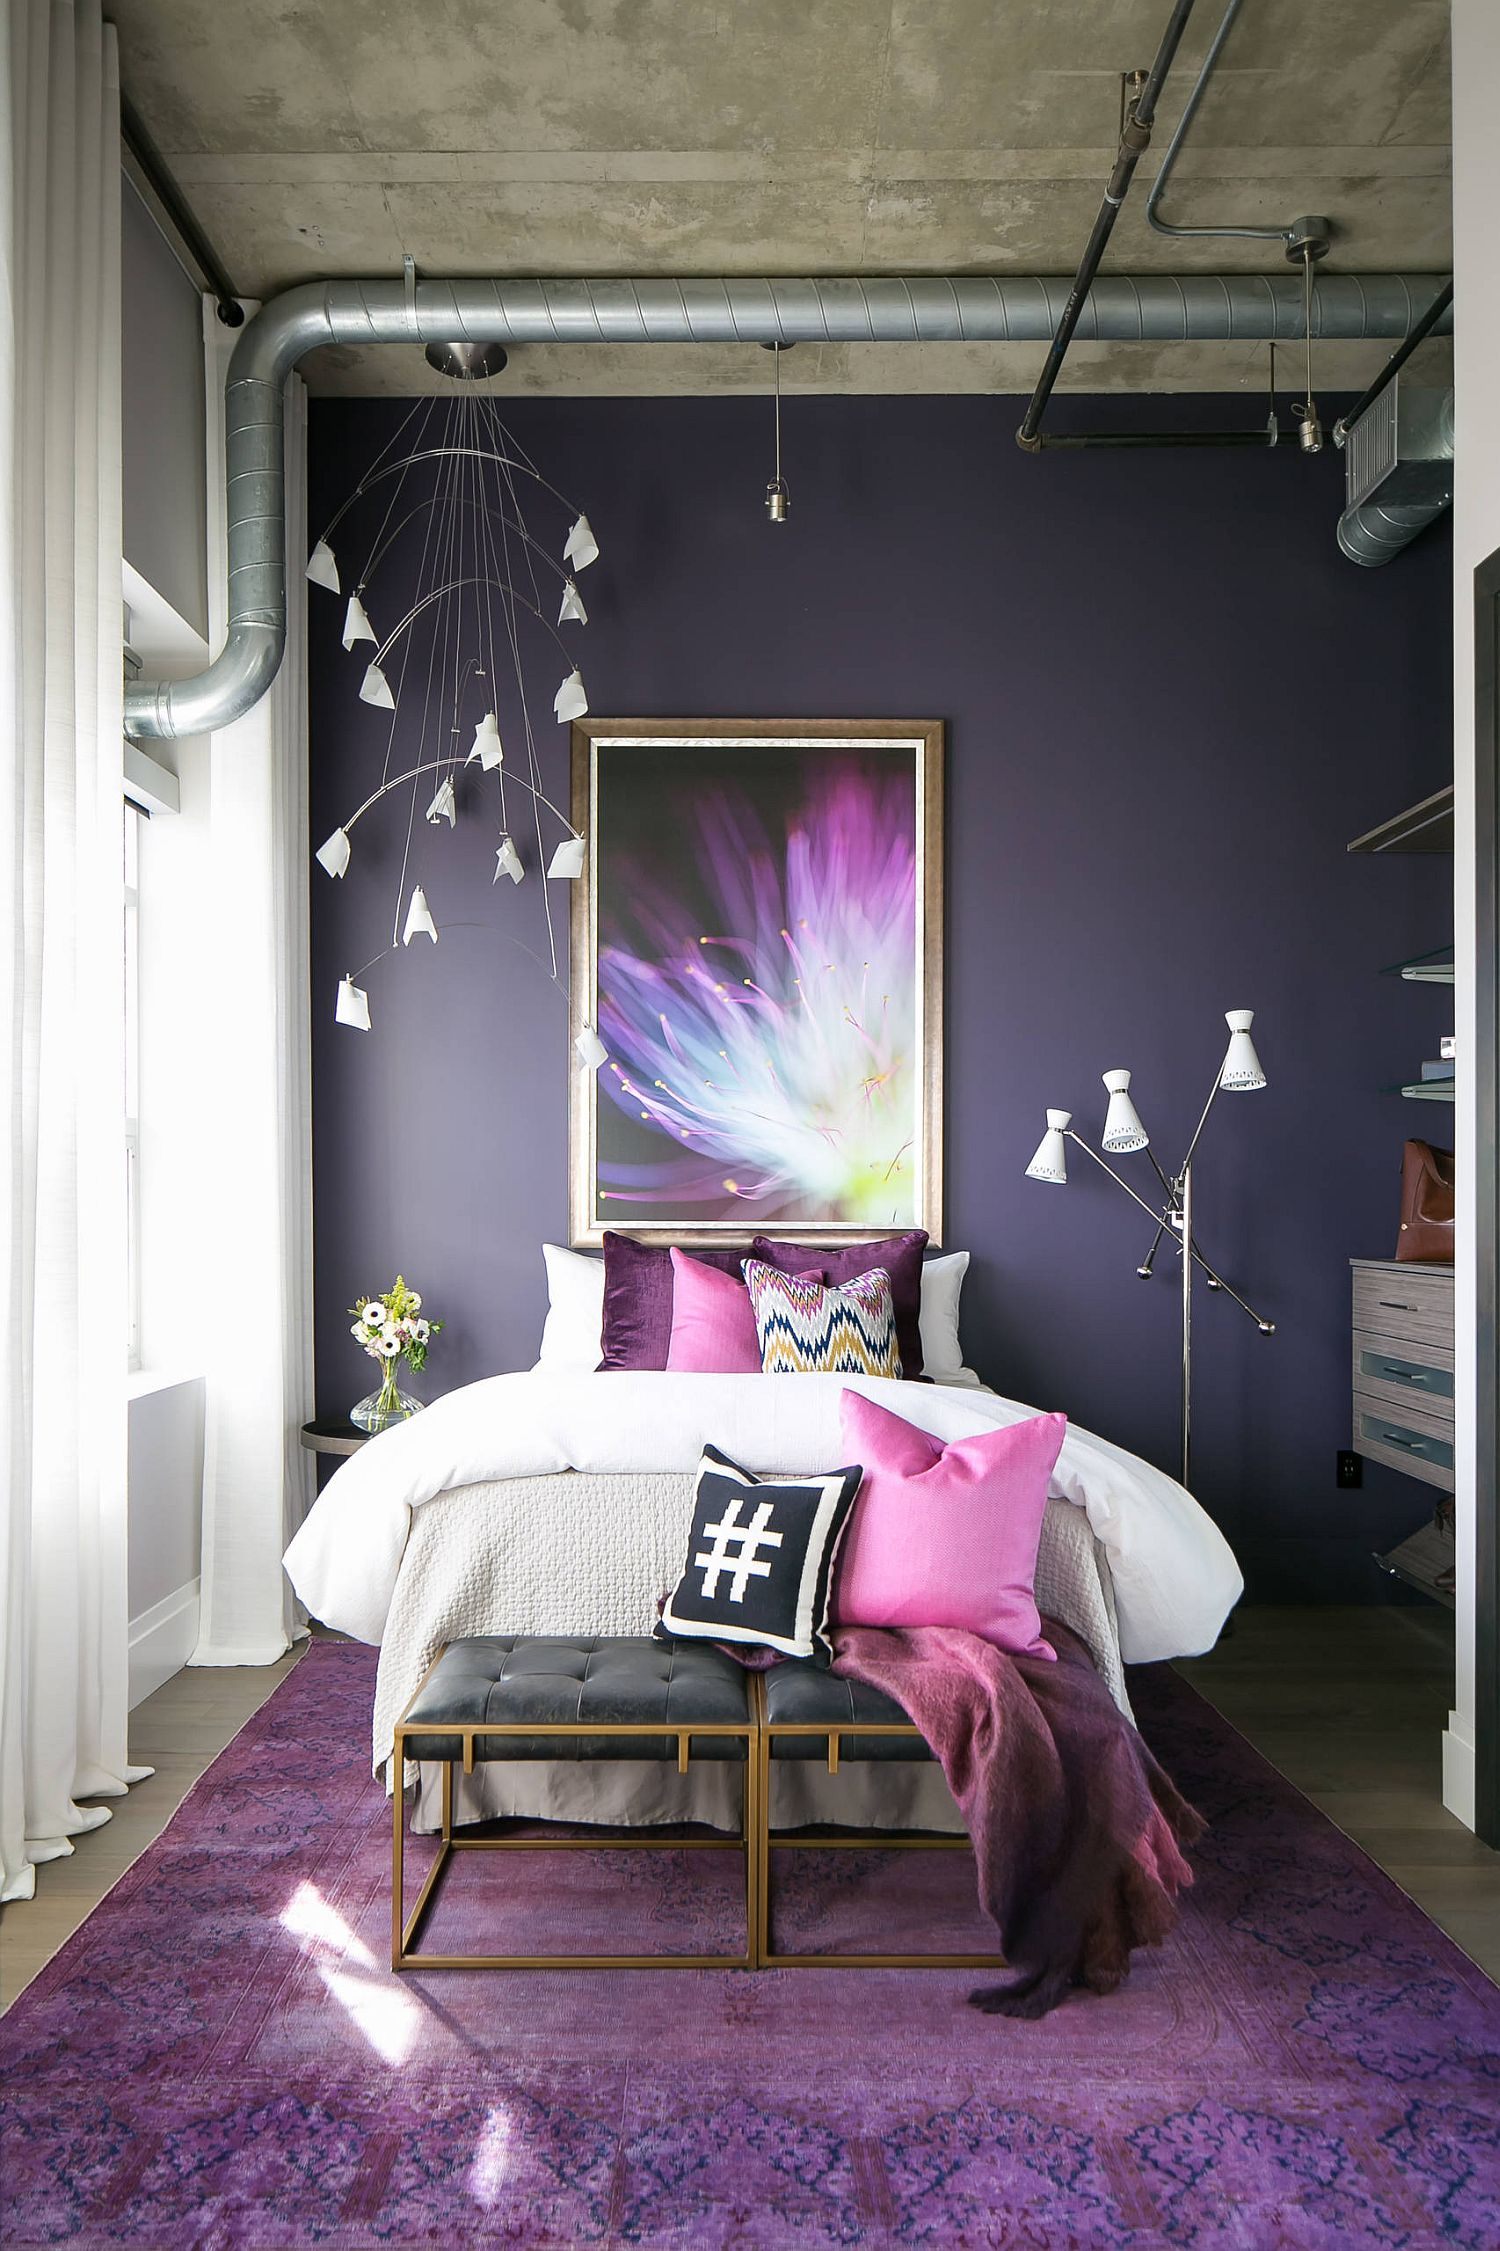 Tiny Space Upgrades Smart Decorating Ideas On A Budget For Small Bedrooms